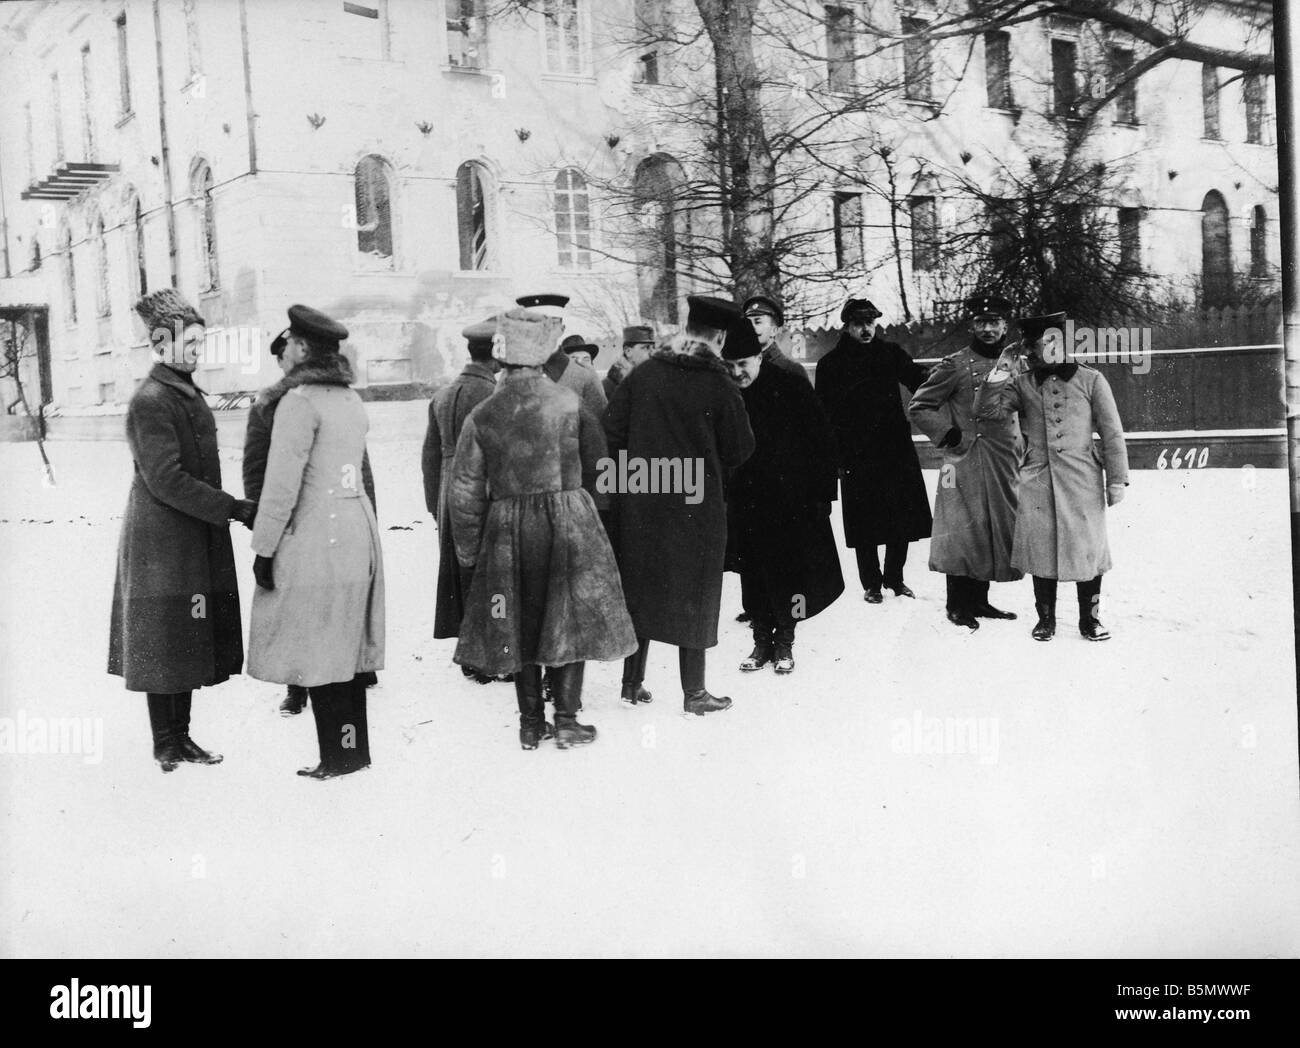 9RD 1918 2 9 A1 1 Ukrainian Delegation a Ger officers World War 1 1914 18 Peace negotiation in Brest Litowsk and - Stock Image